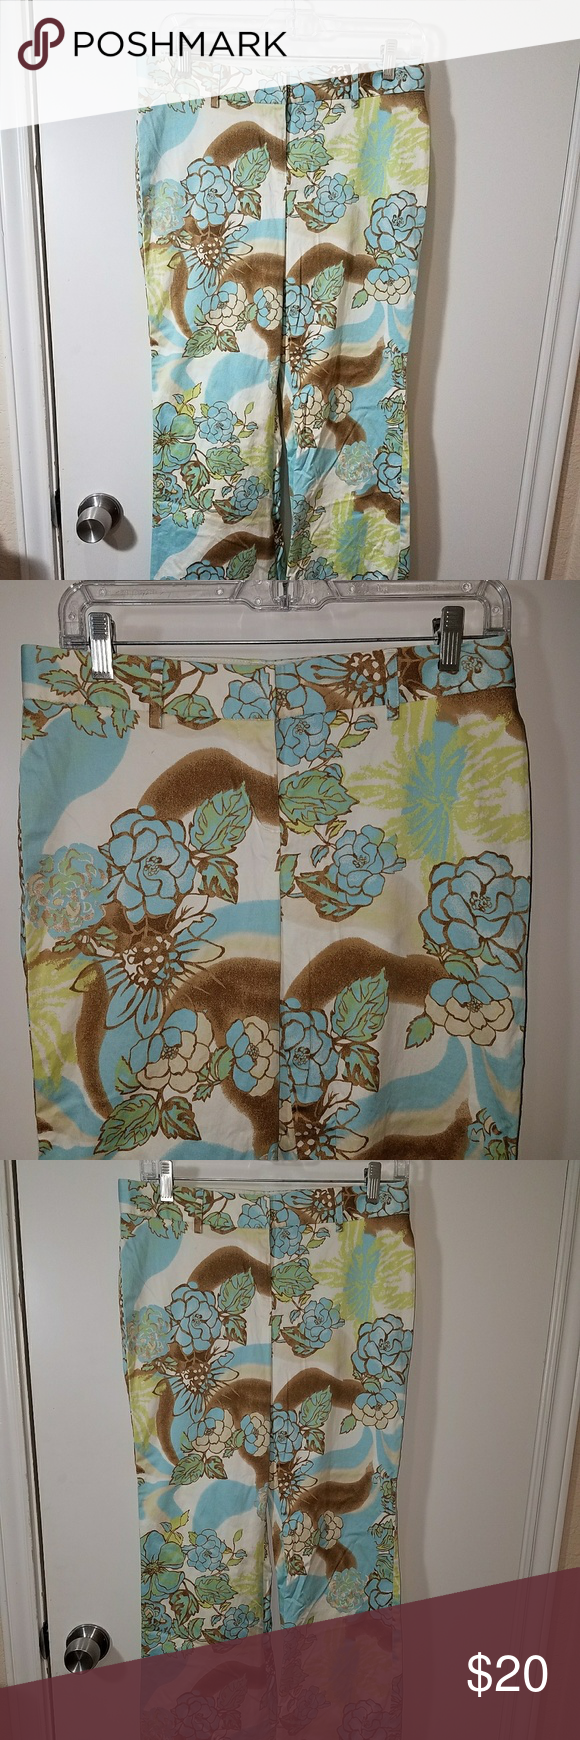 Express editor floral pants size 2 Gently used.  No holes or stains.  Cotton blend.  Machine washable.  Zip/pull in front. Waist 30, inseam 32, ankle flat 9 6/6 (m30) Express Pants